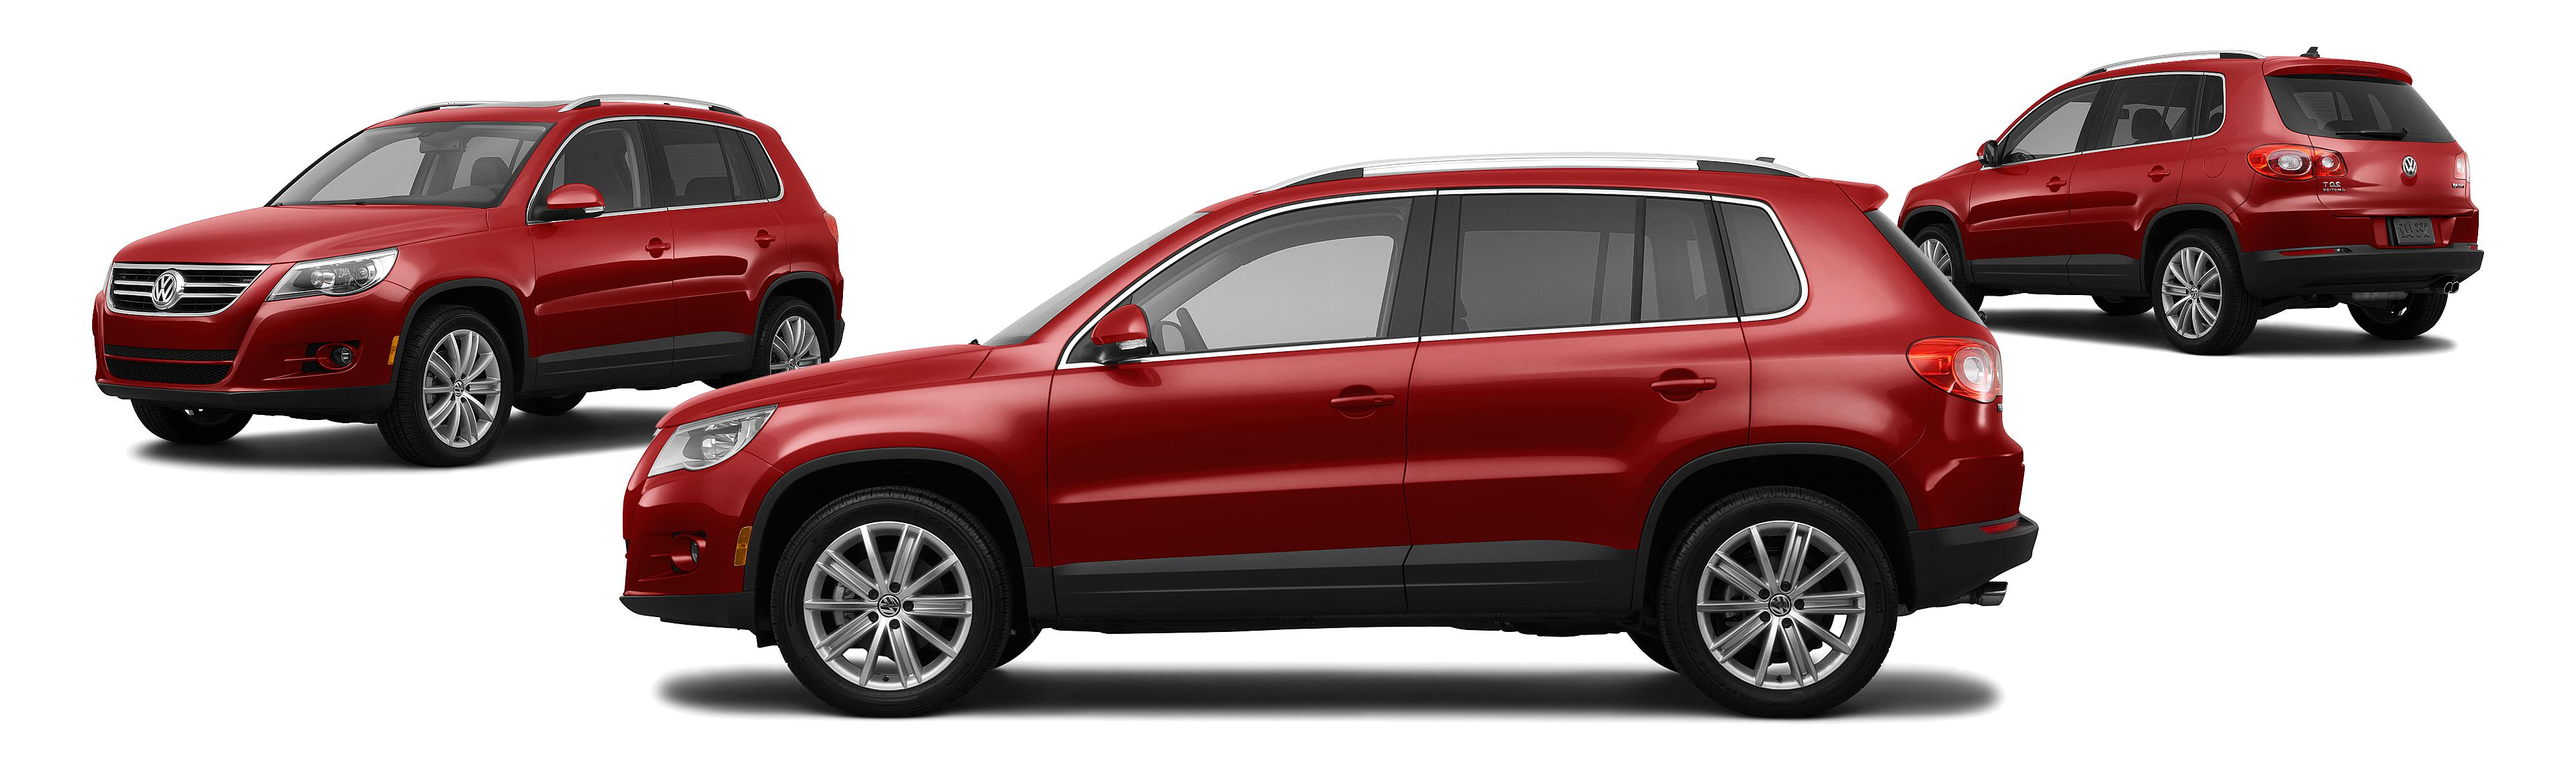 2011 Volkswagen Tiguan SEL 4Motion 4dr SUV w/ Premium Navigation and  Dynaudio - Research - GrooveCar